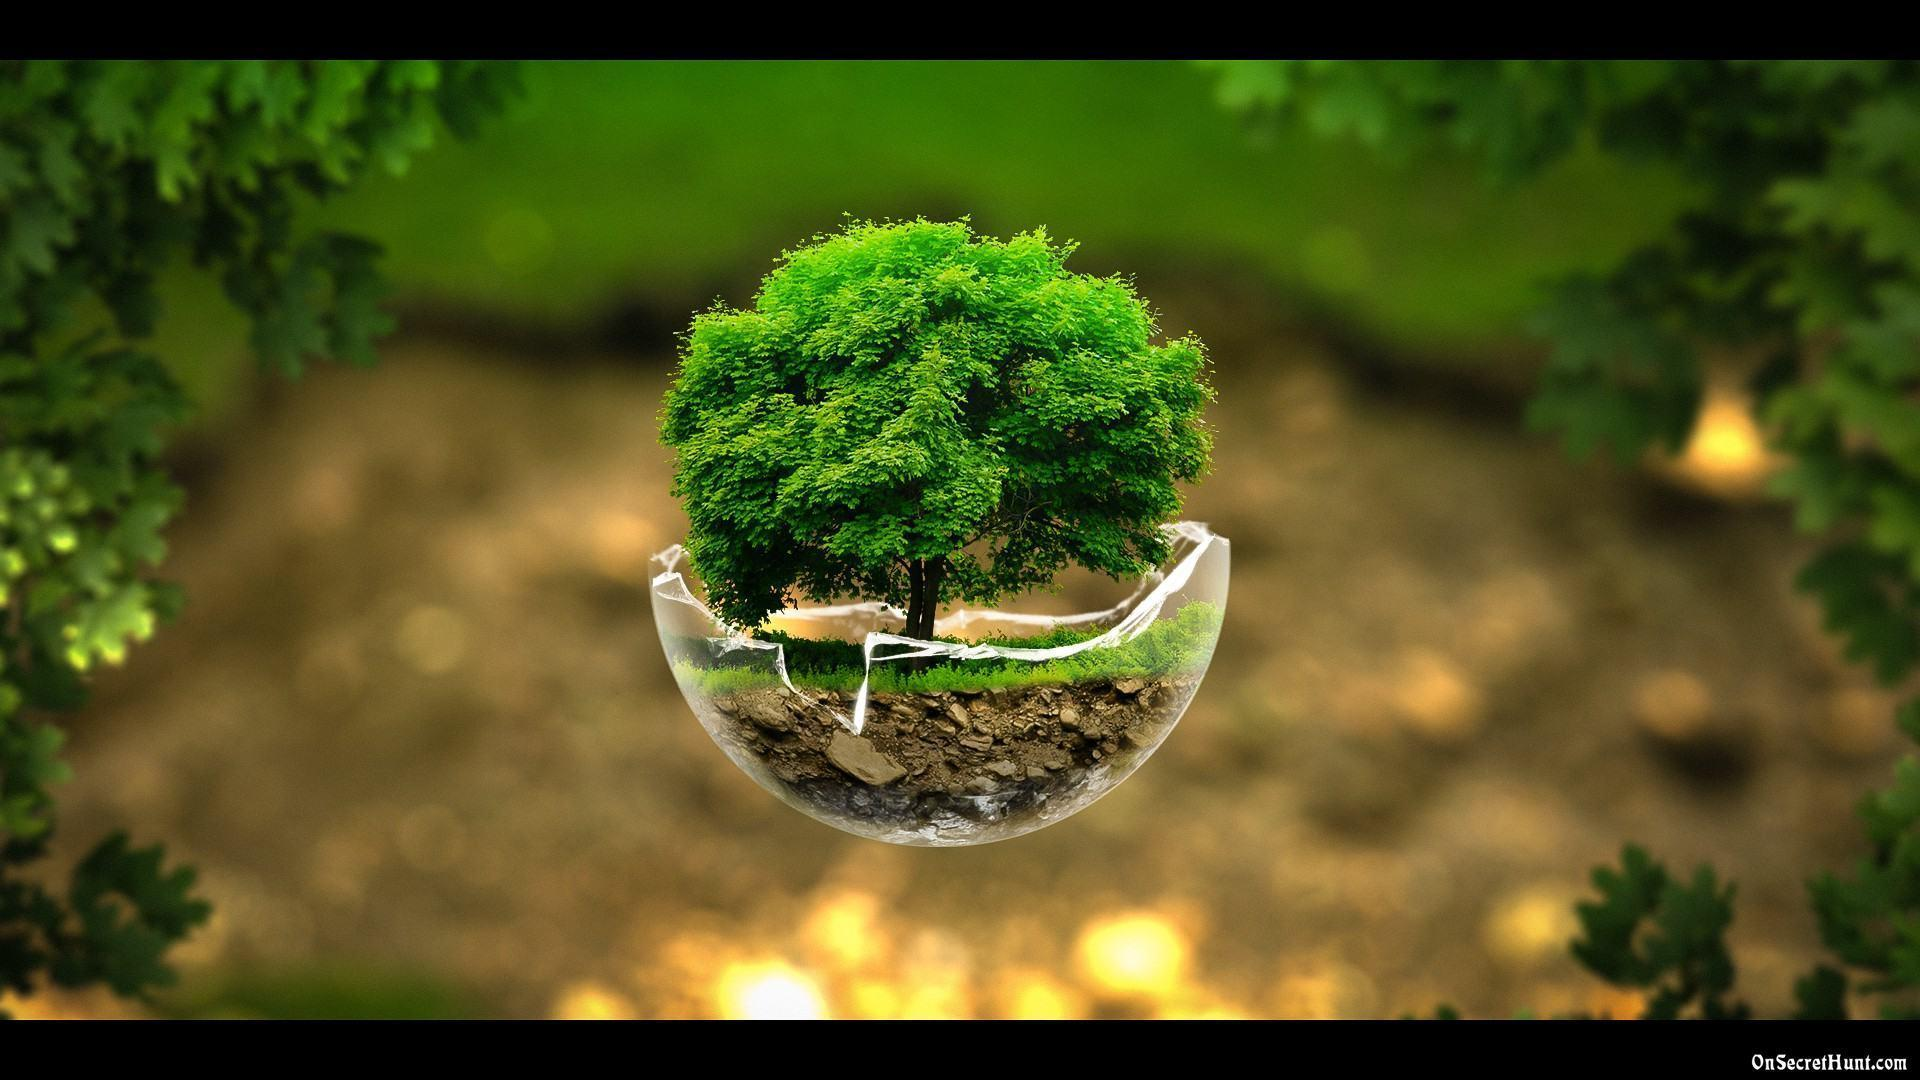 Hd wallpaper khubsurat - Earth Day 2015 Wallpaper Download Wallpapers